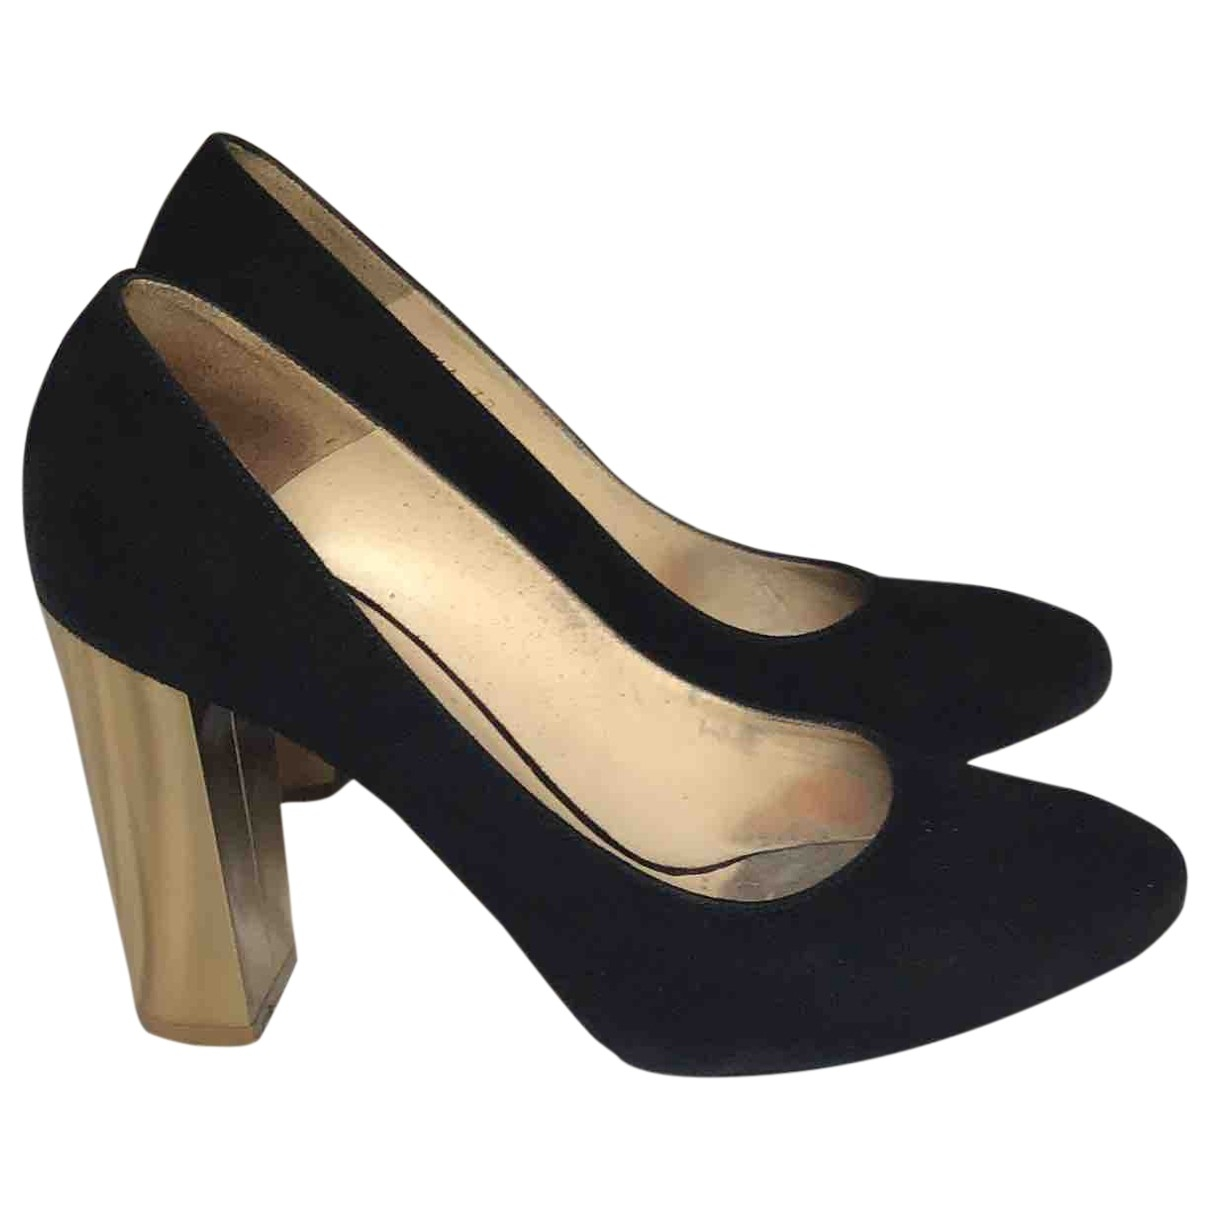 Lk Bennett \N Black Suede Heels for Women 38 EU